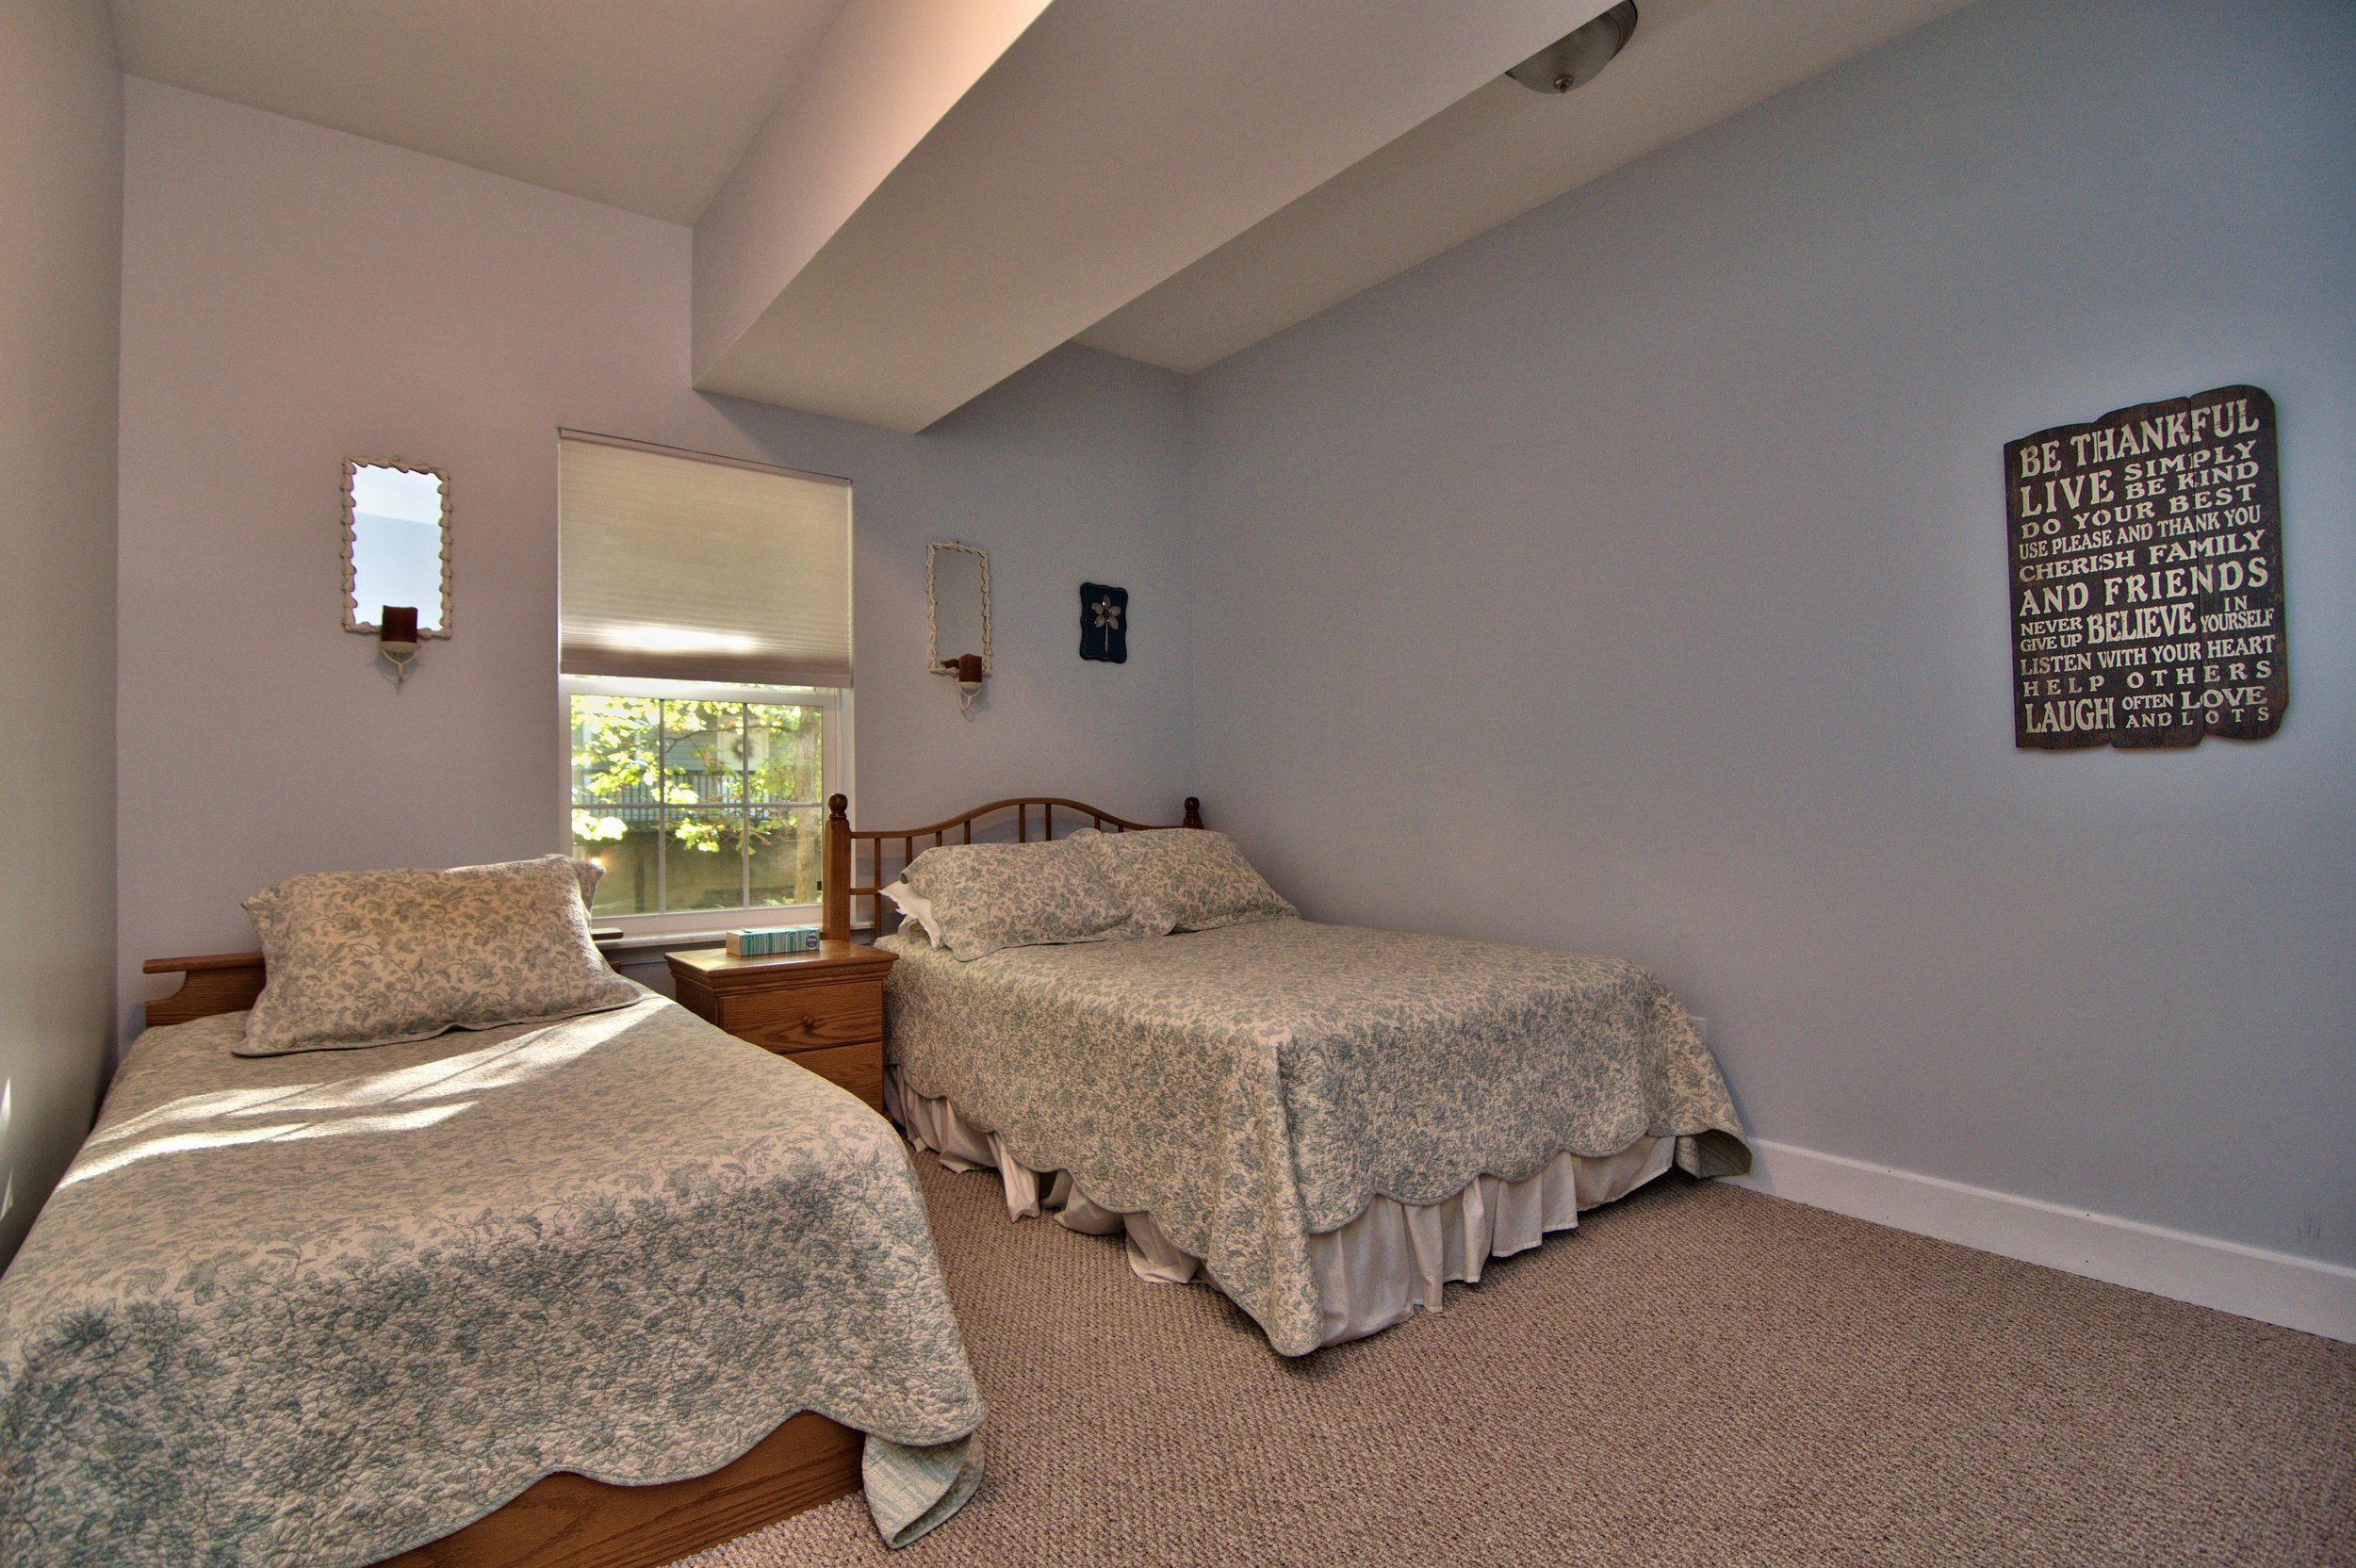 Lower Level Bedroom 2 View 3.jpg